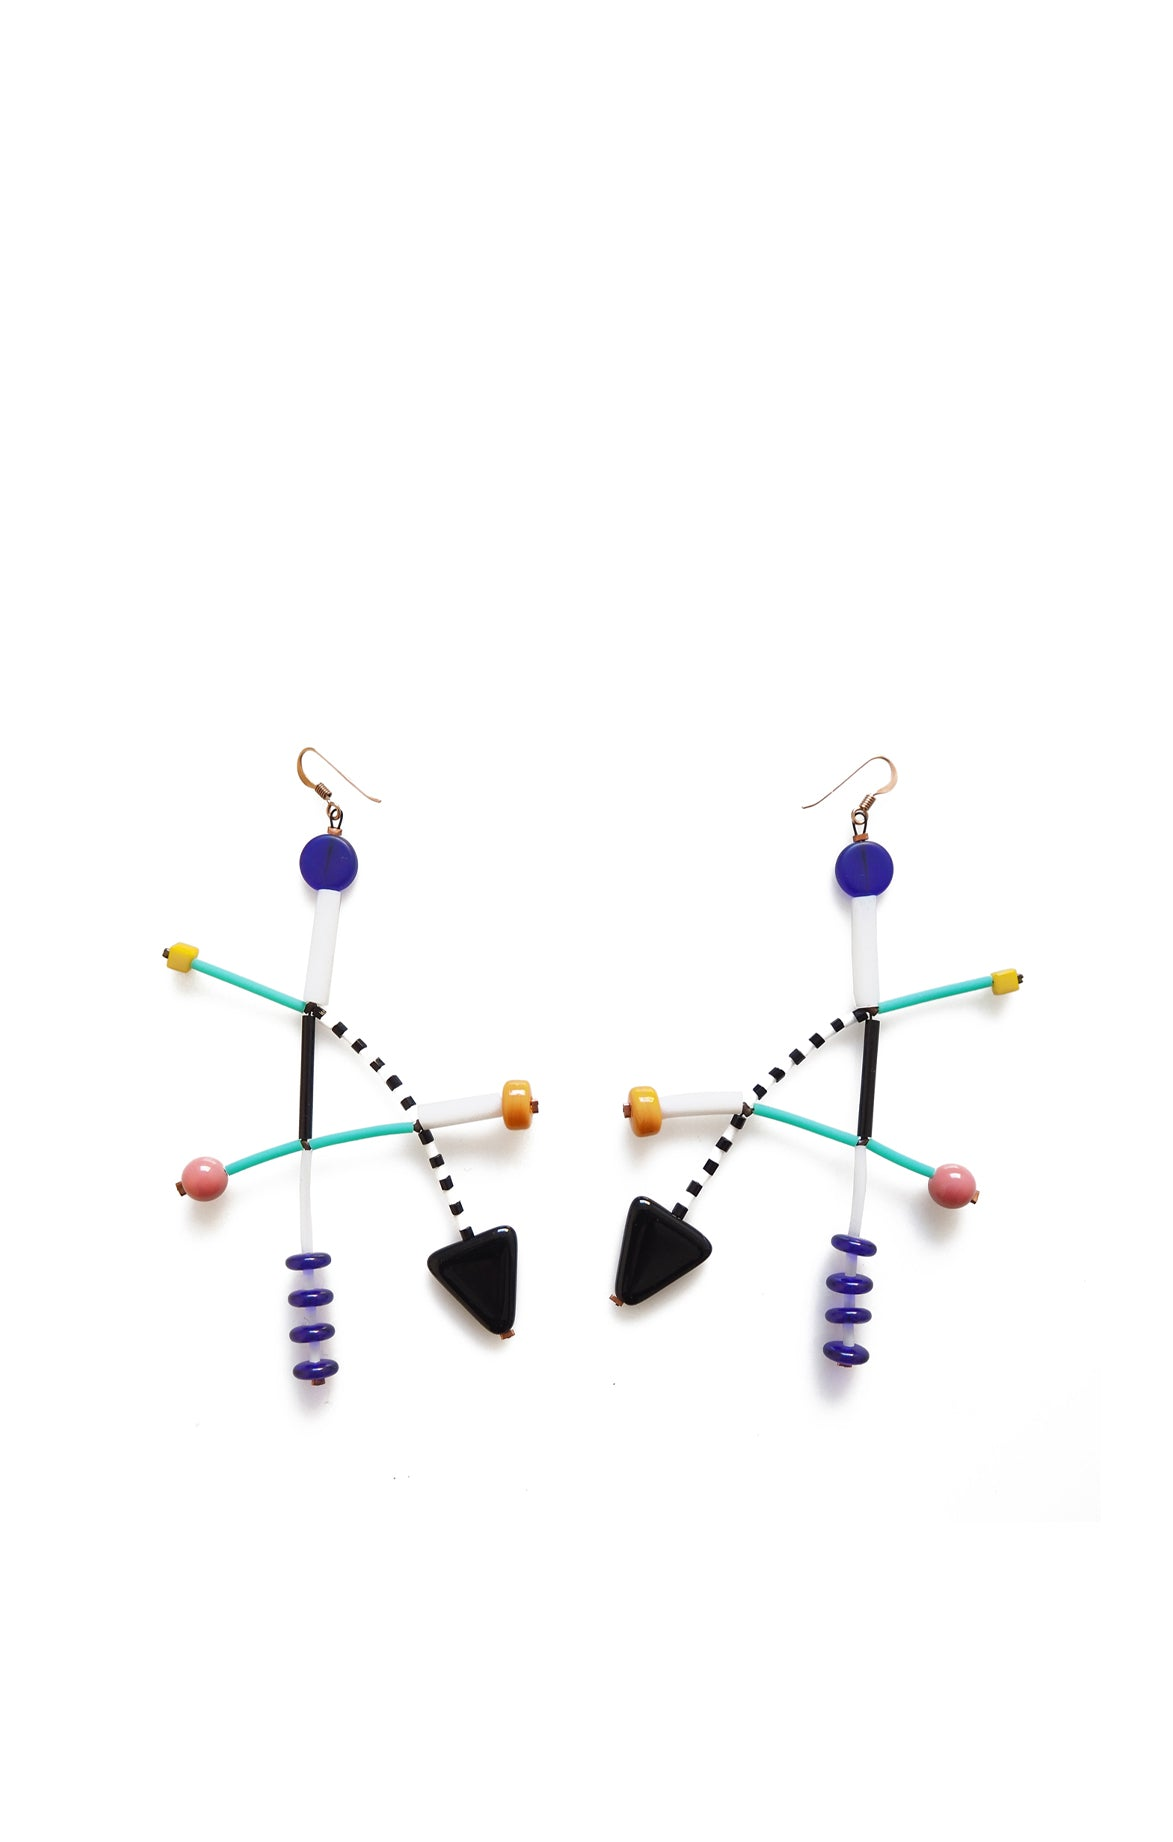 Earrings #5